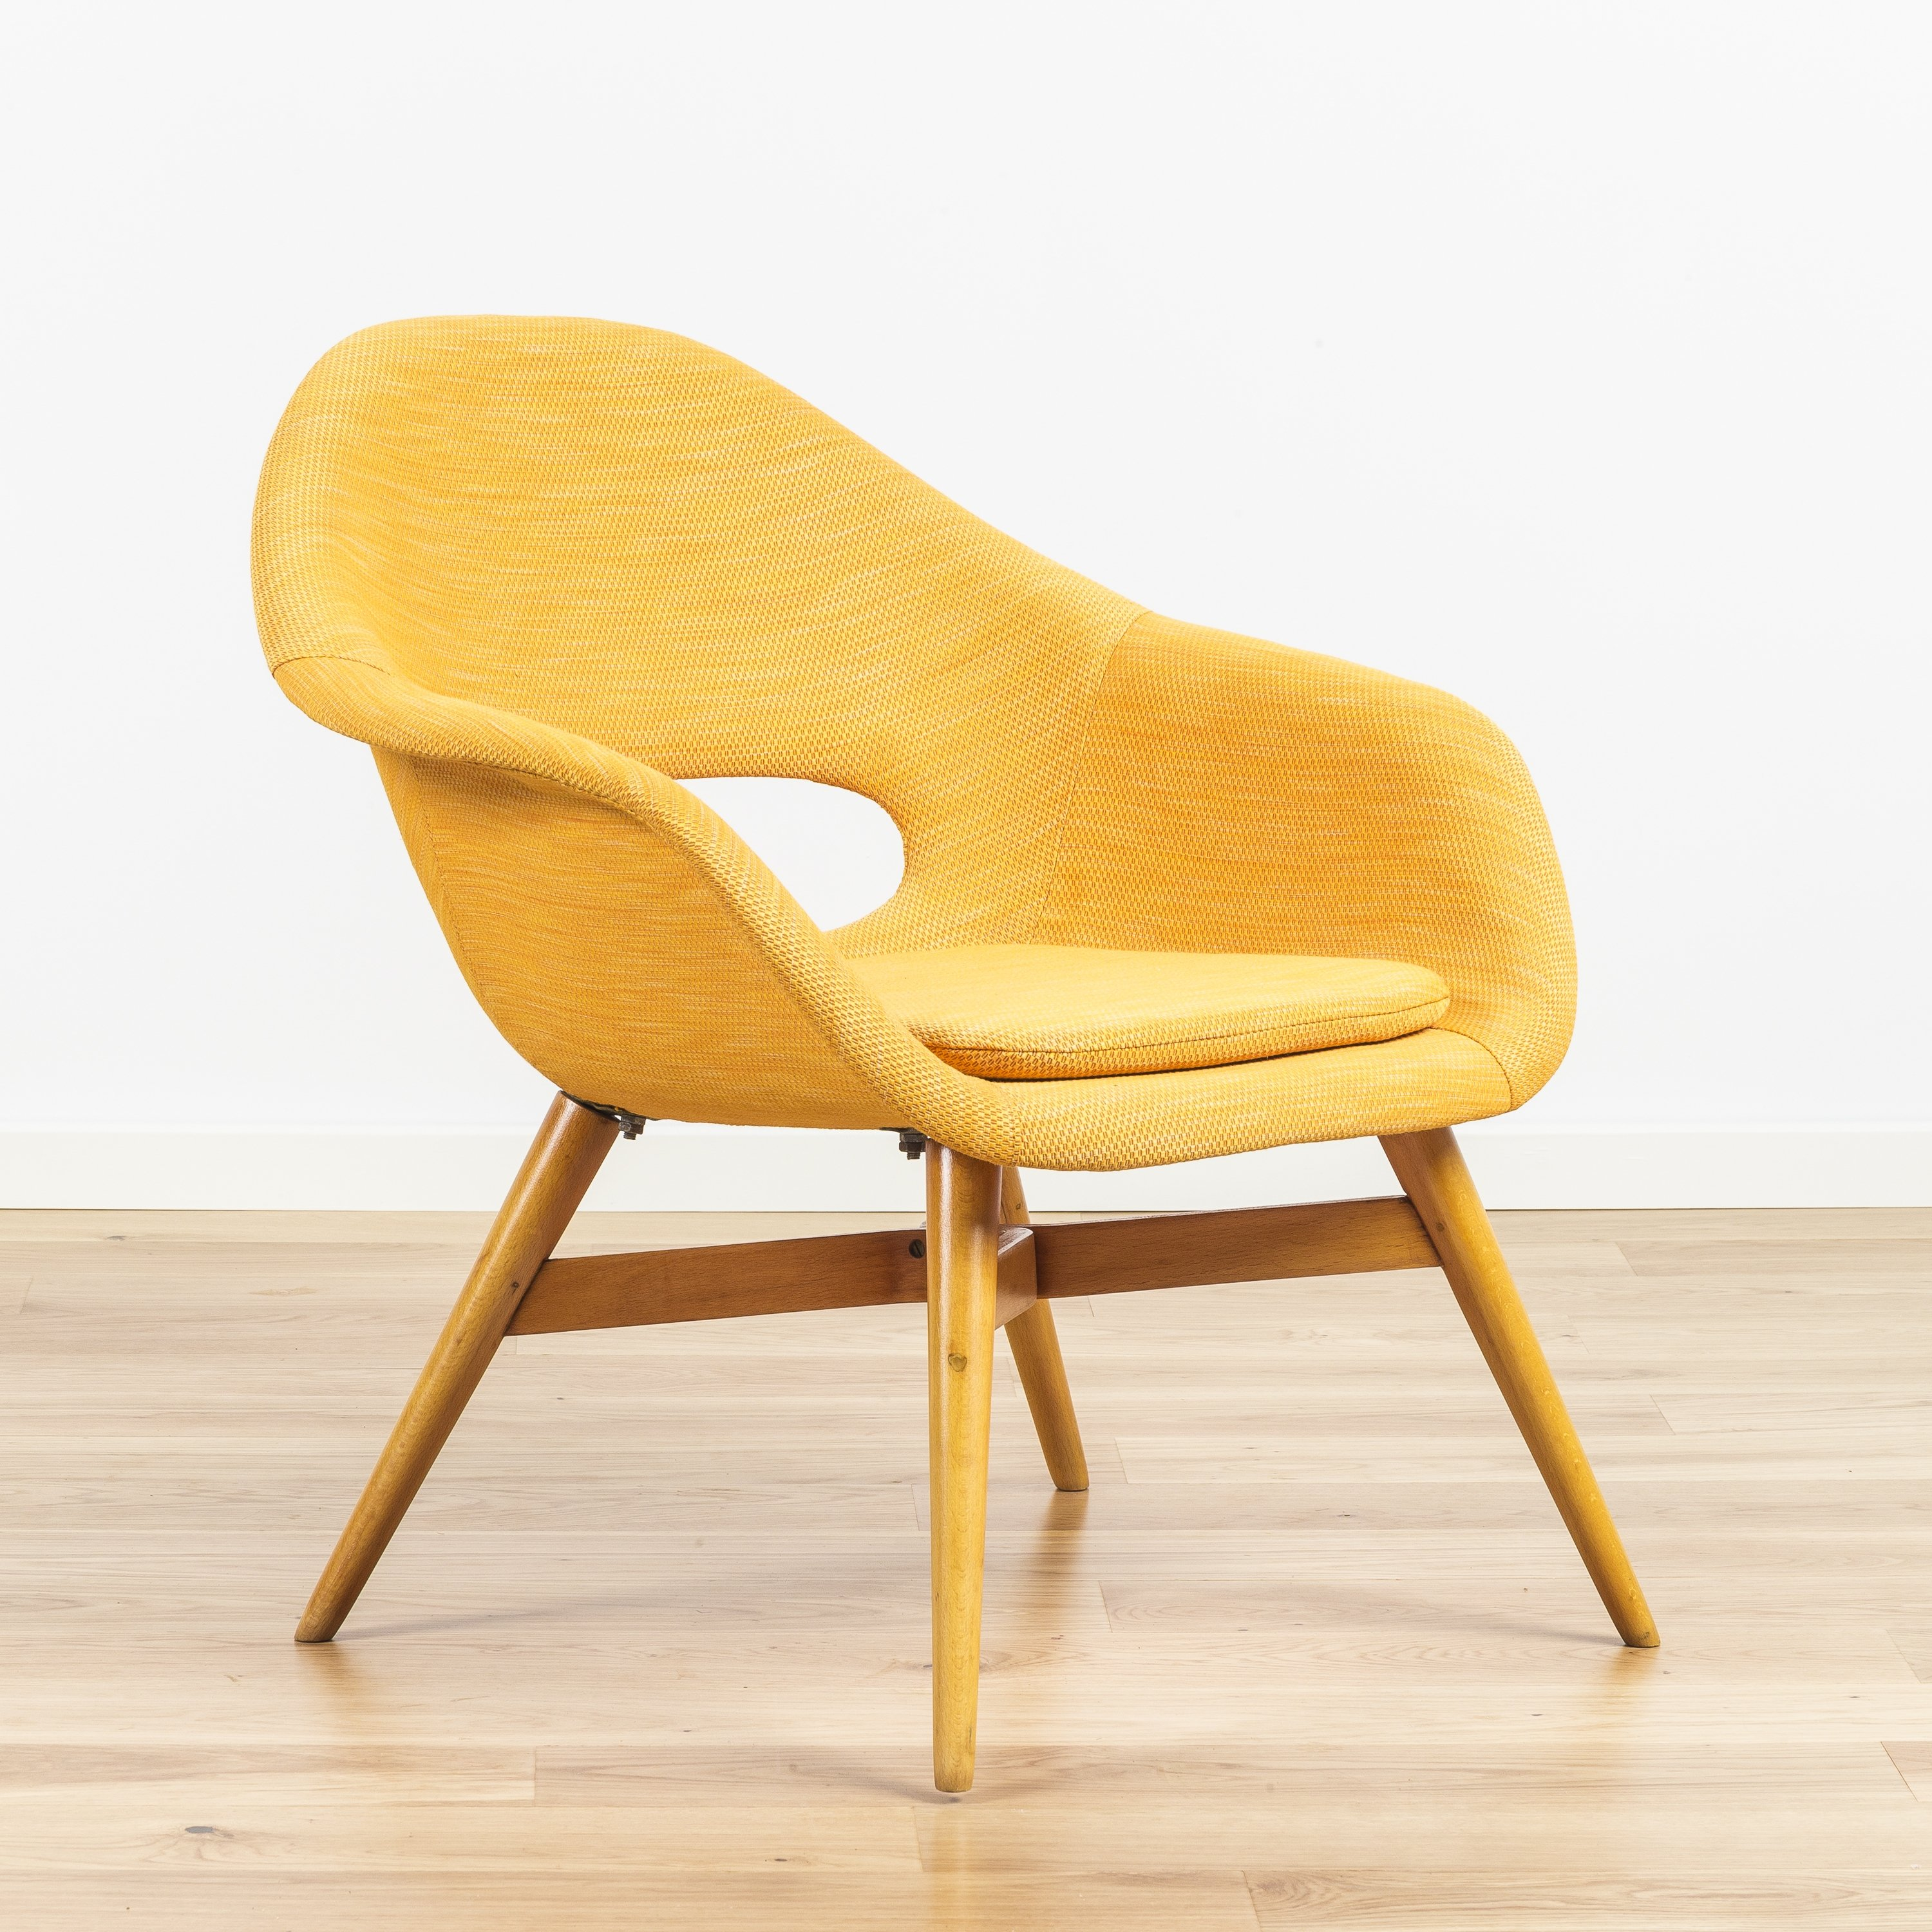 Bucket Chair By Miroslav Navratil, 1960s